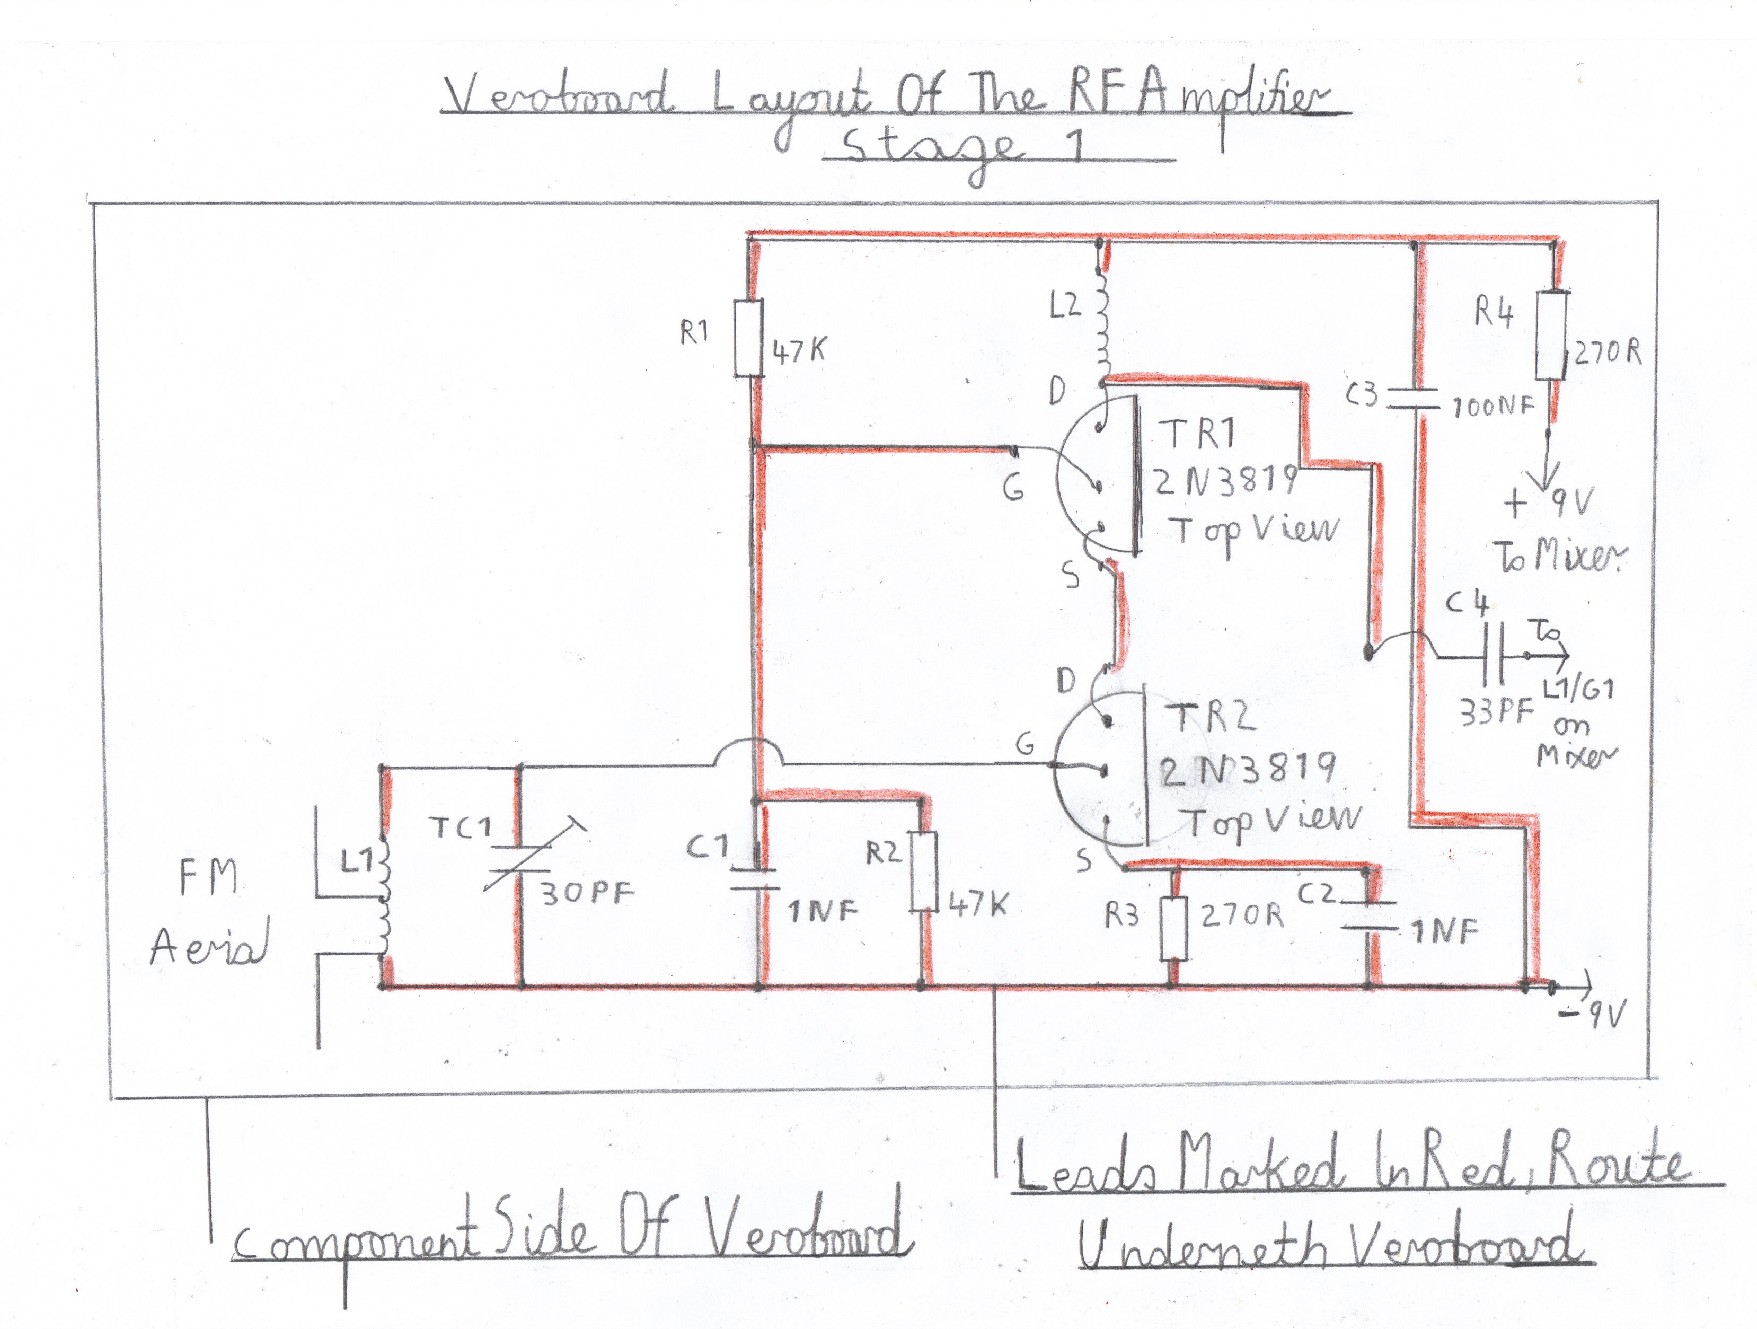 hight resolution of wiring diagram of the rf amplifier this stage is wired and tested after the vhf receiver is known to work ok this now completes the constuction